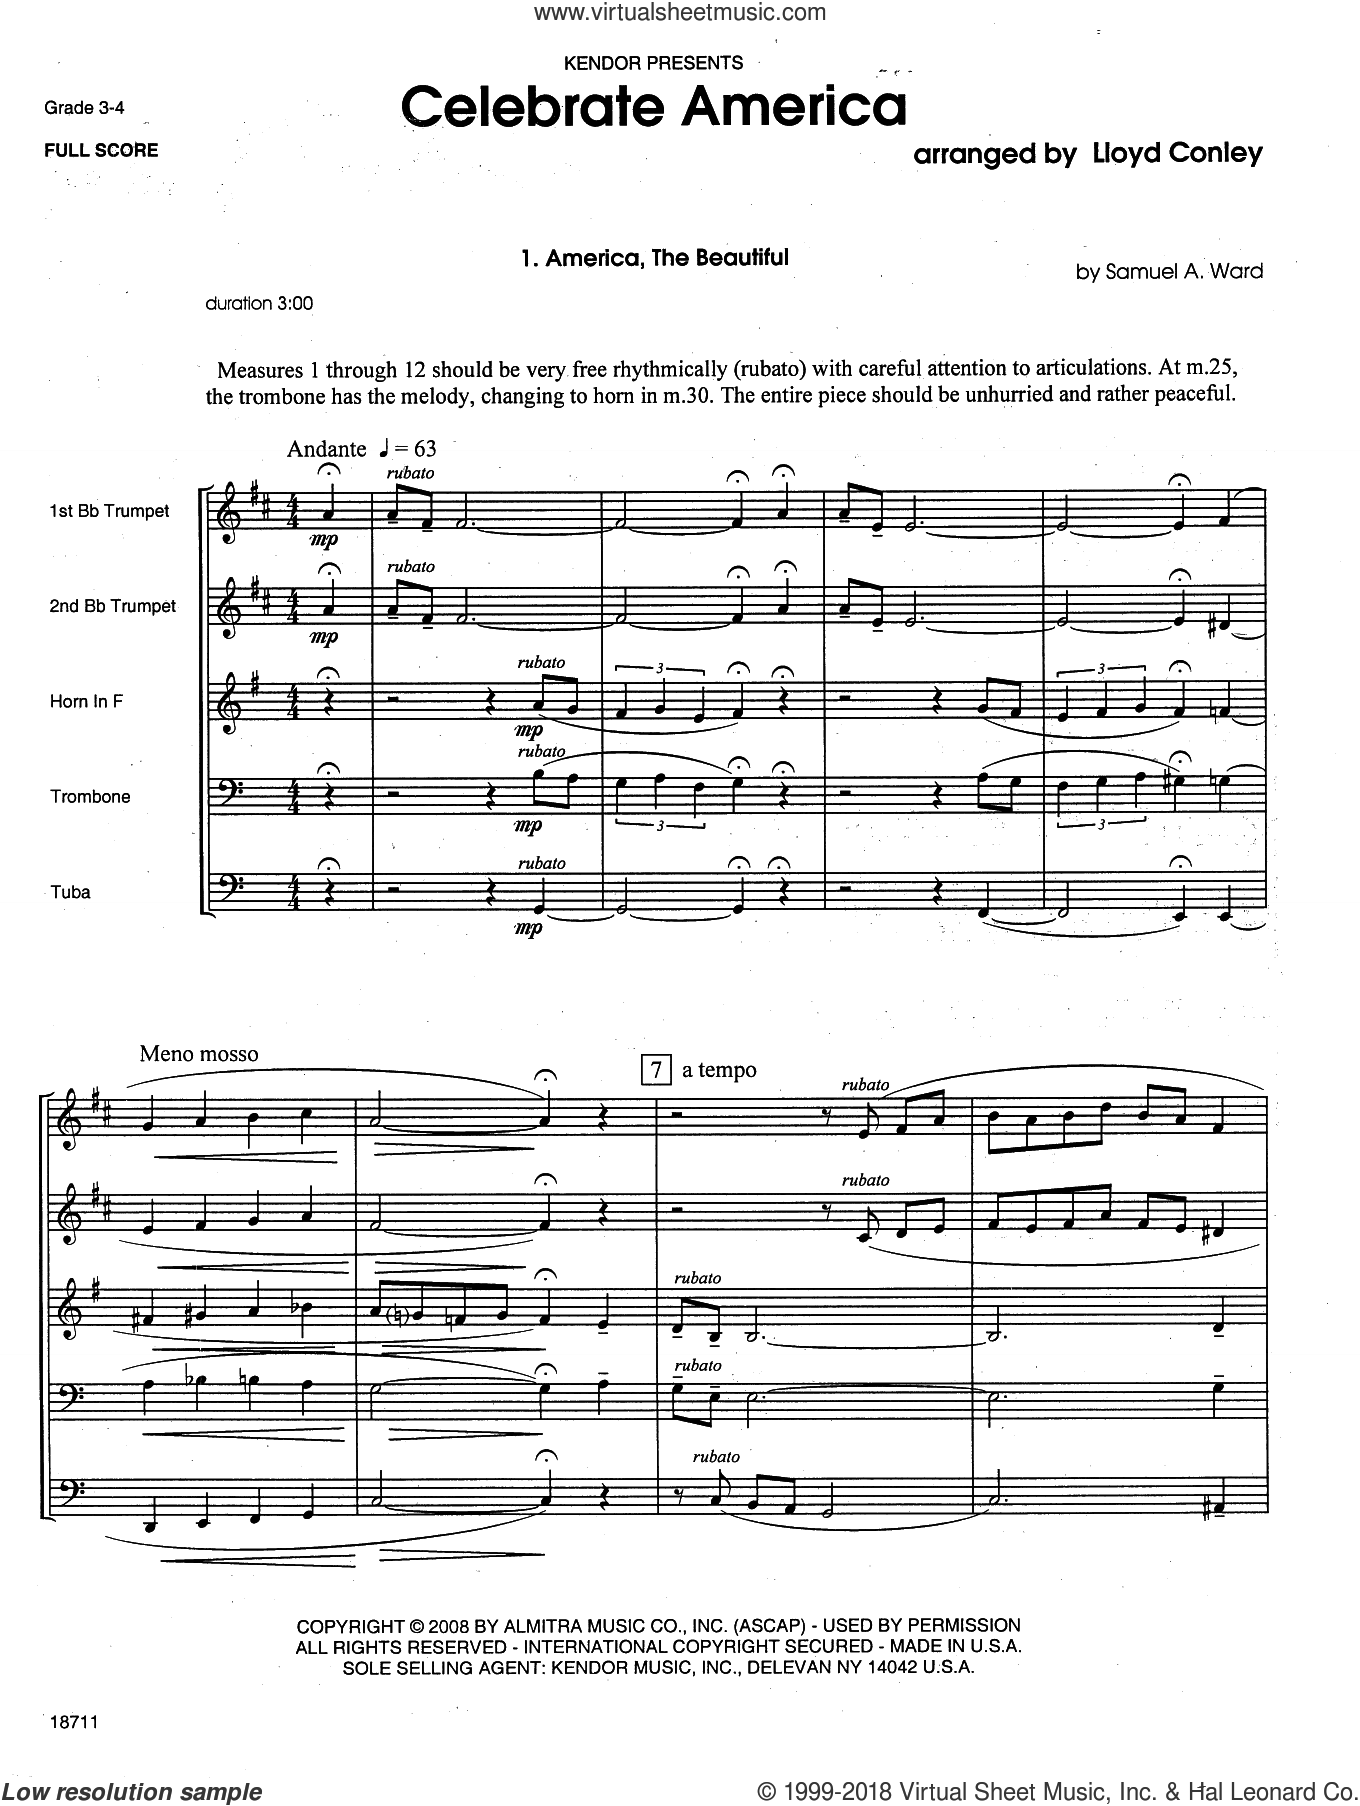 Celebrate America (COMPLETE) sheet music for brass quintet by Lloyd Conley, classical score, intermediate skill level